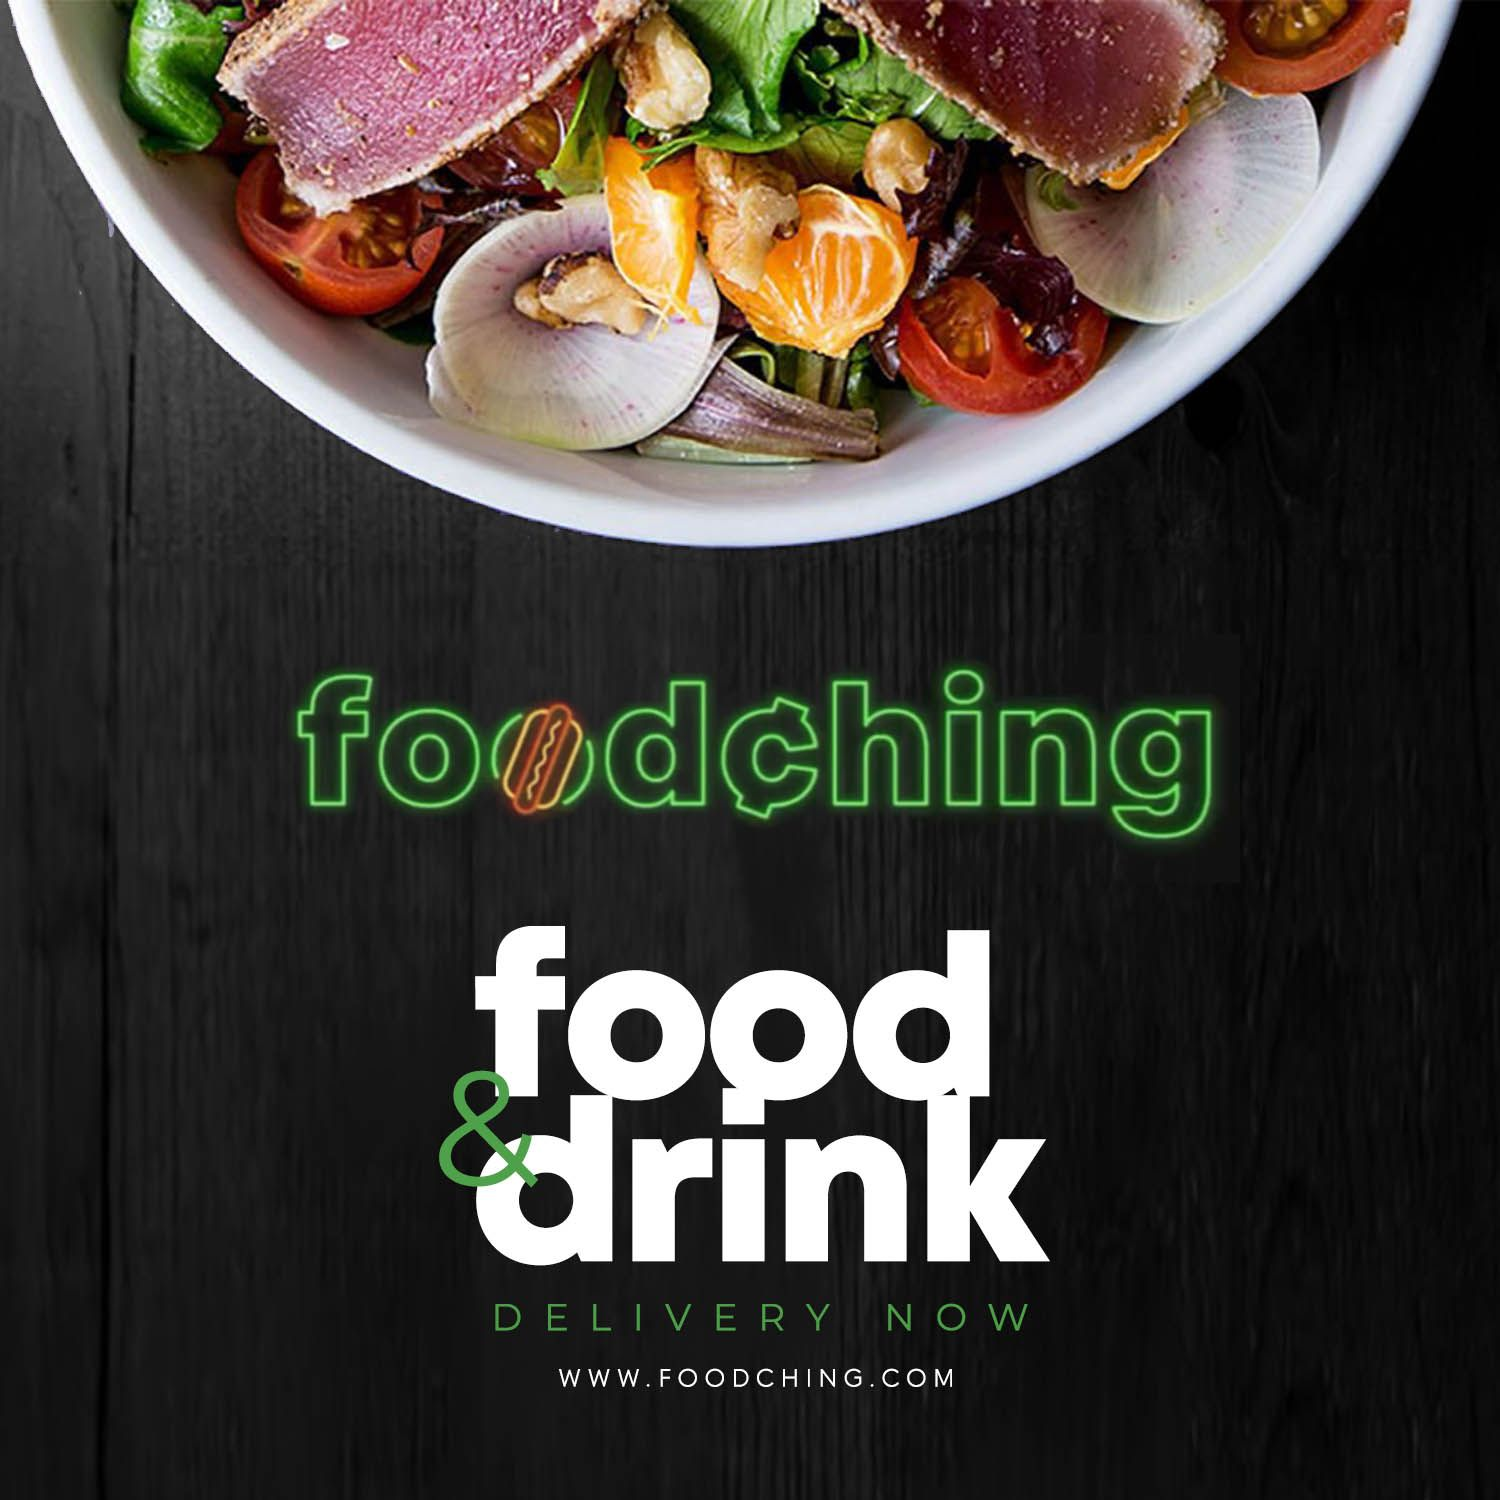 FoodChing Food and Drink Delivery Service Expanding Nationally